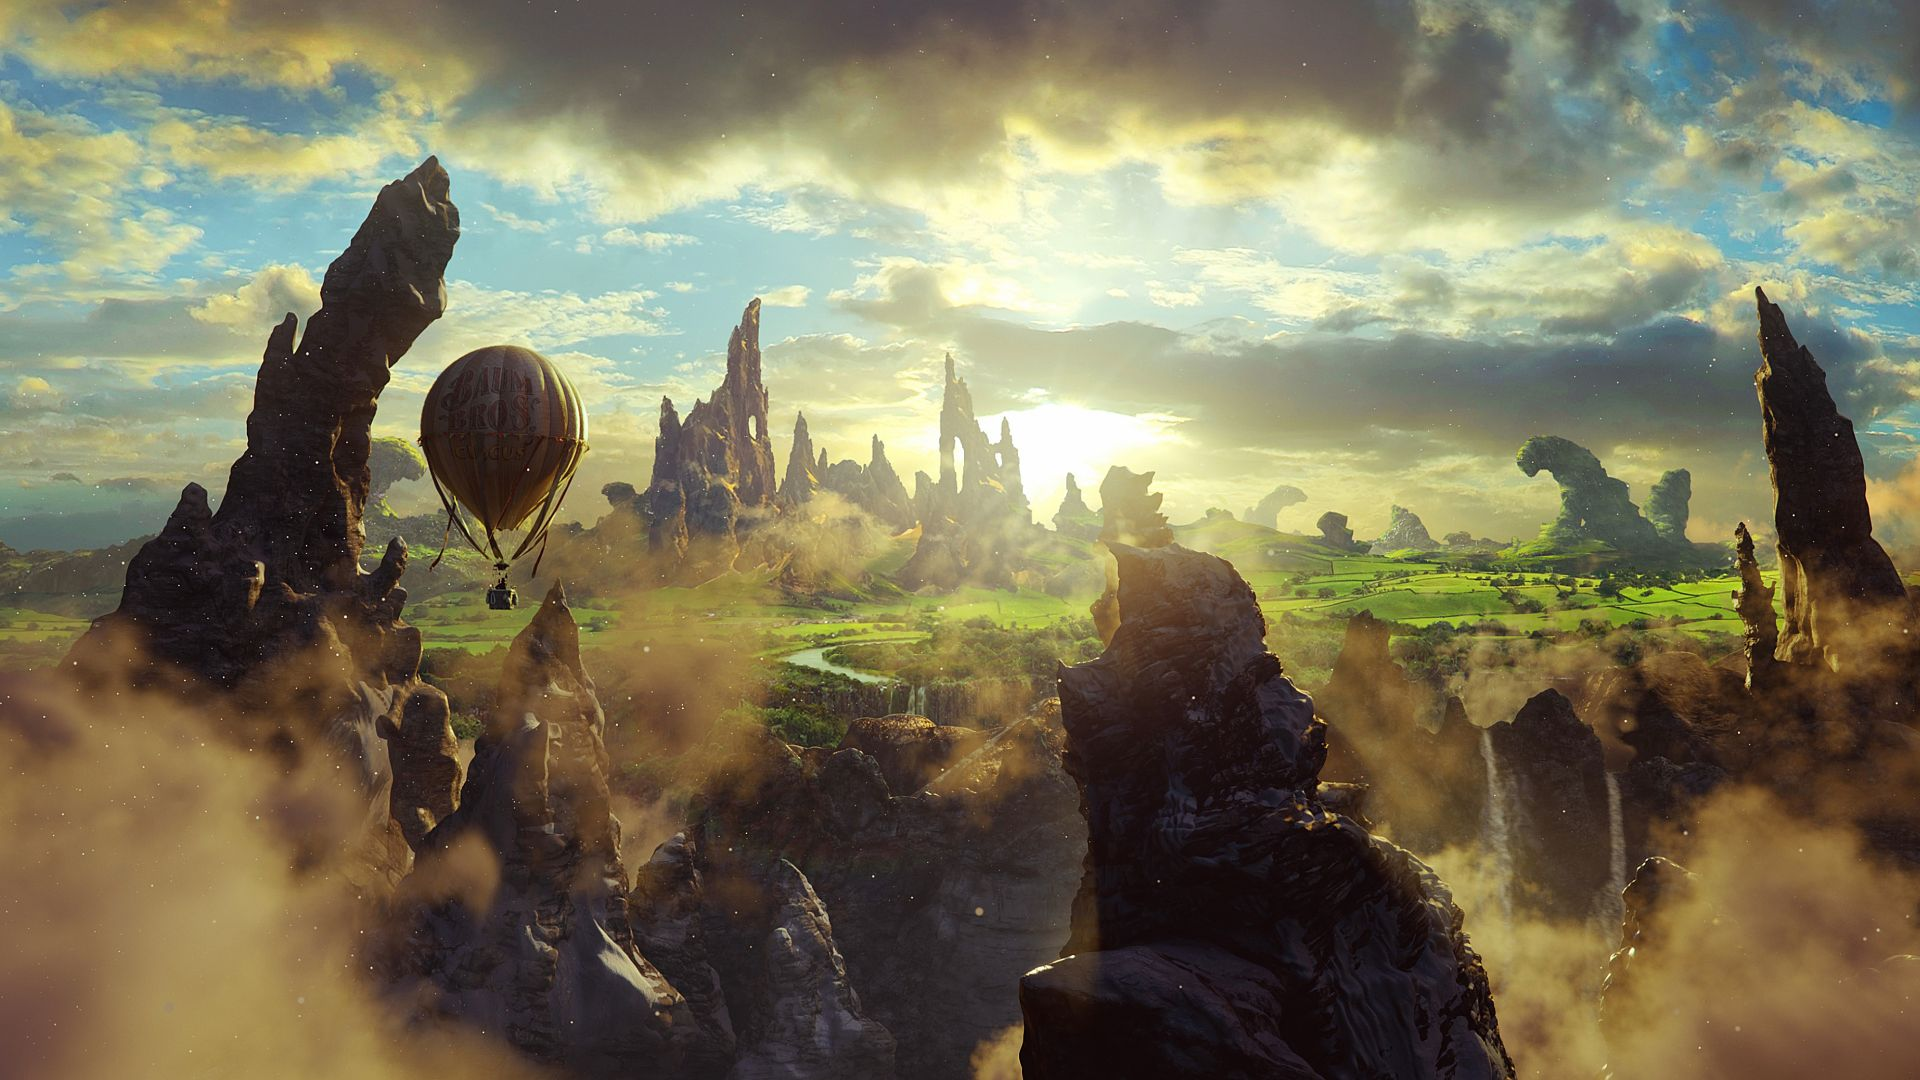 Oz: the Great and Powerful, 4k, 5k wallpaper, fantasy, cliffs, baloon, sky (horizontal)